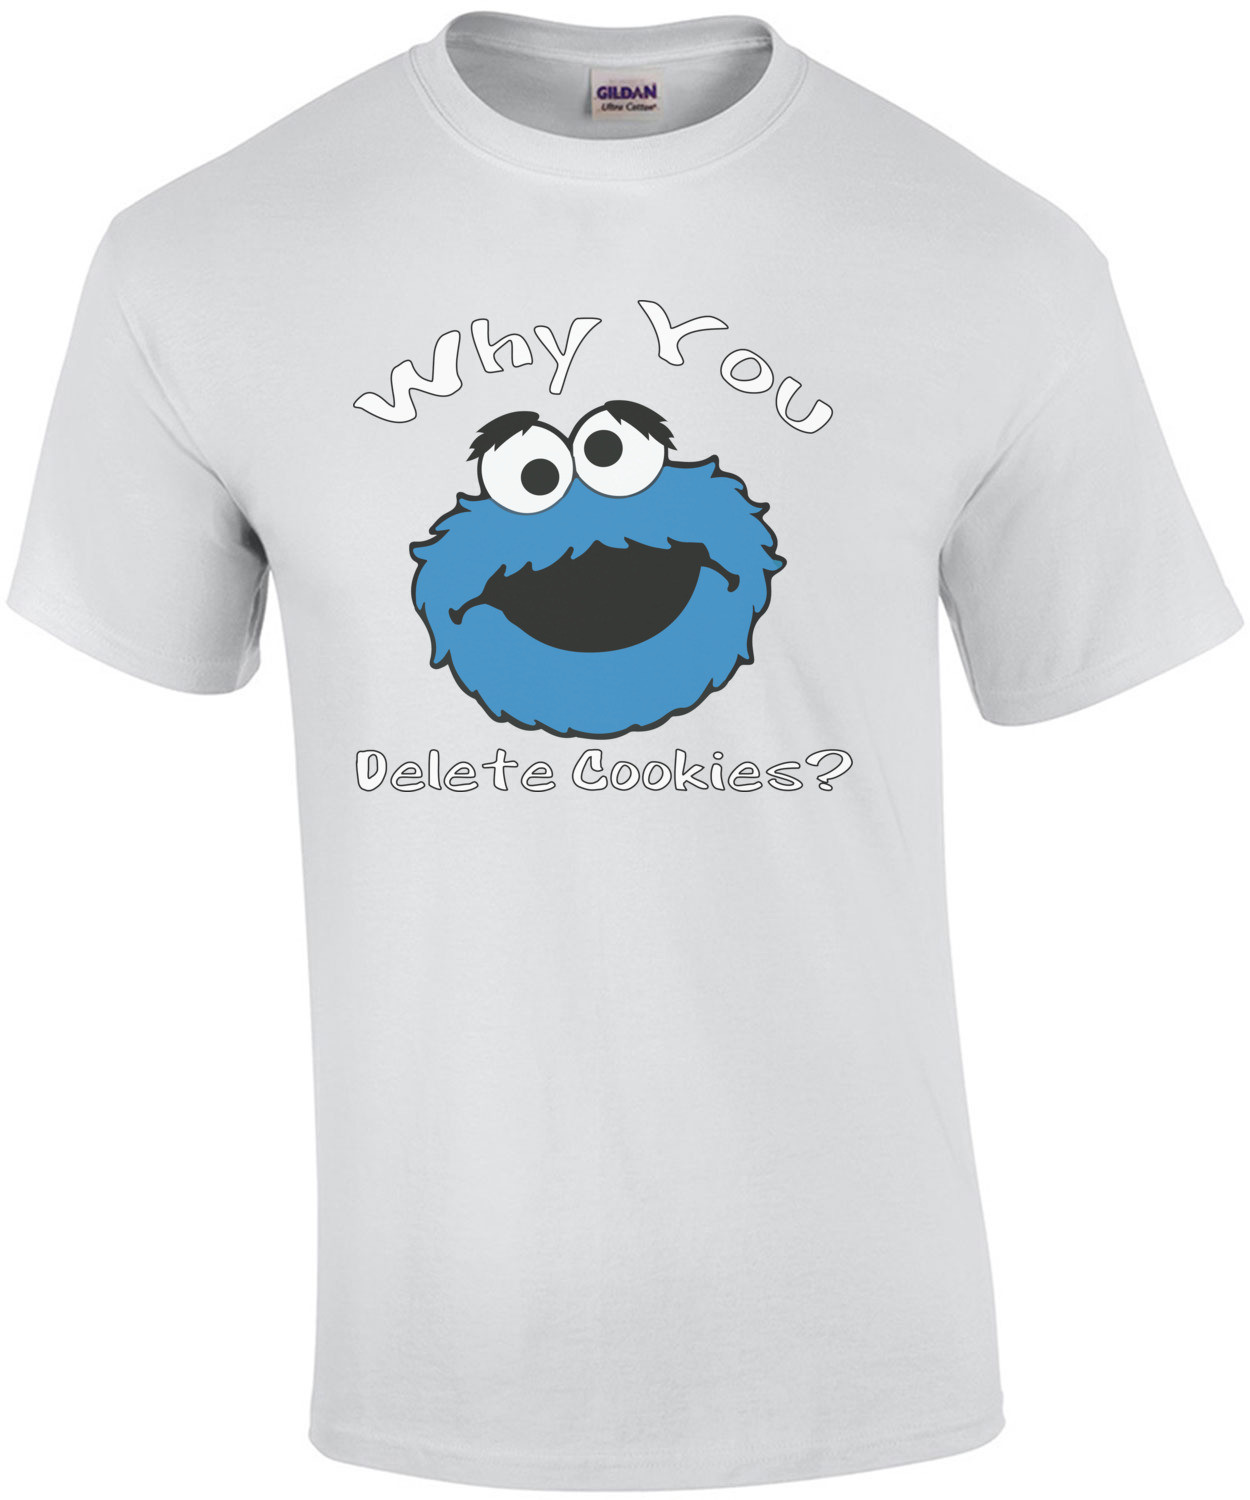 Why You Delete Cookies? Cookie Monster T-Shirt